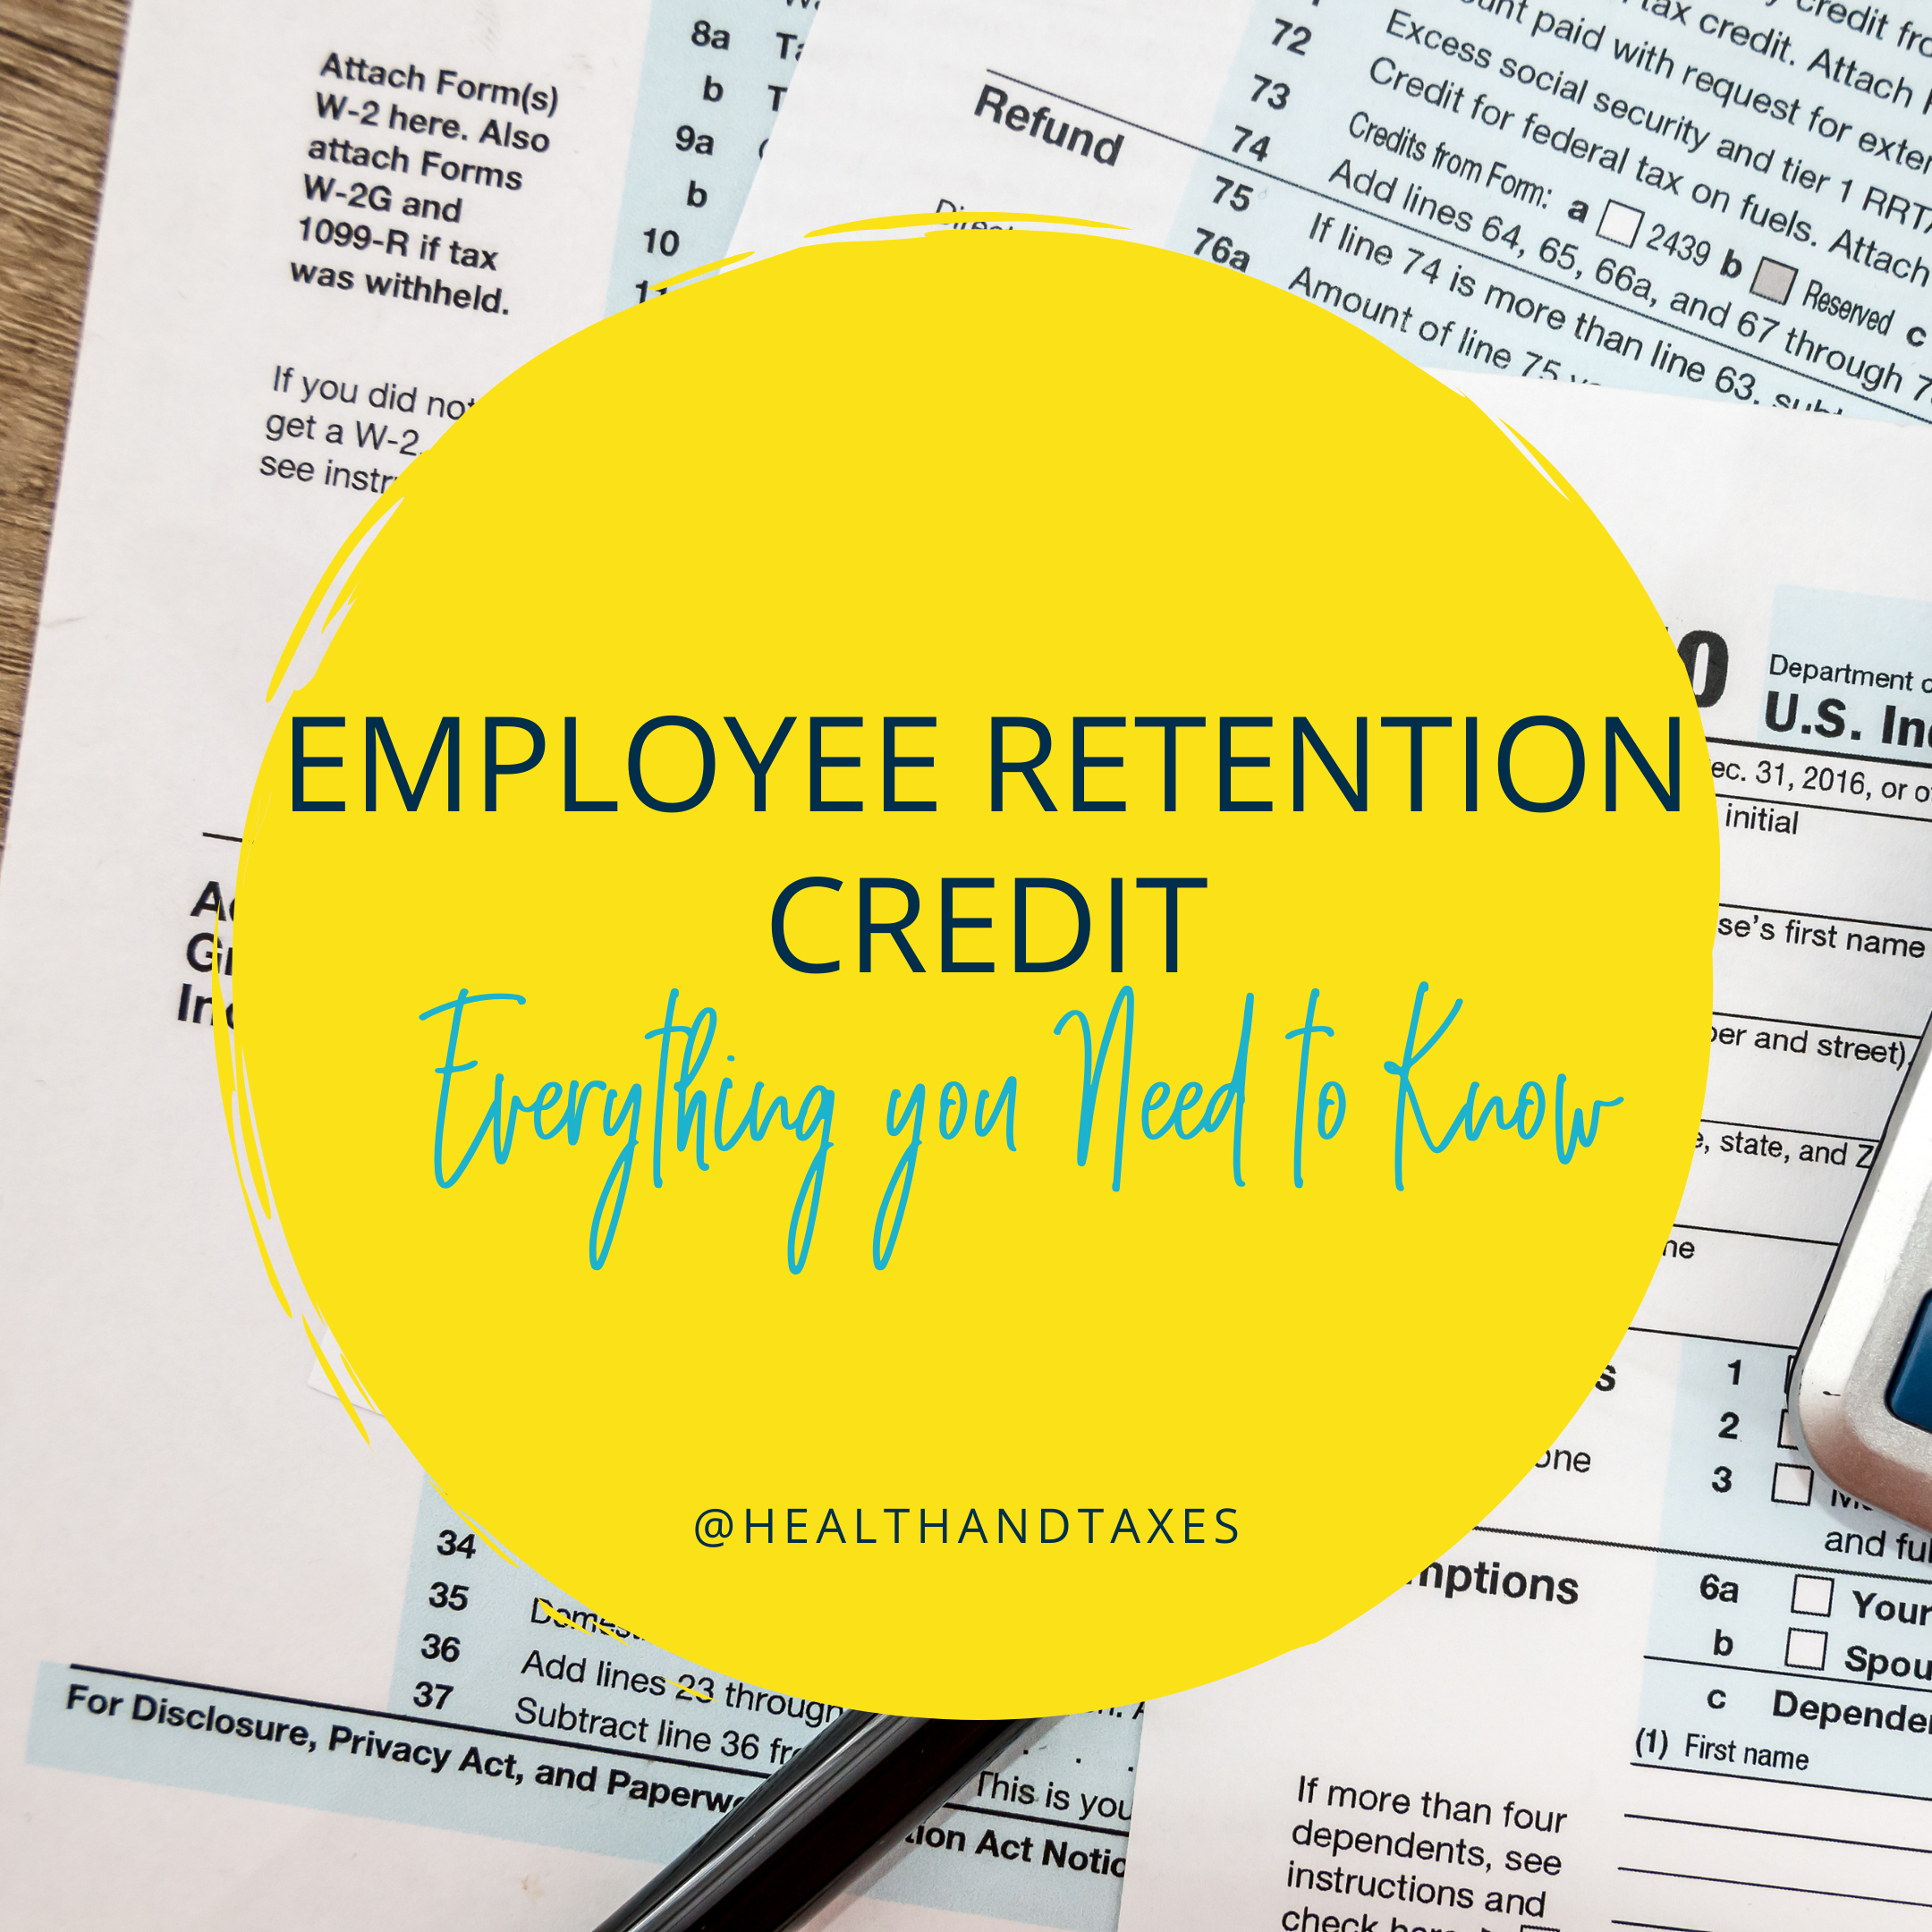 Employee Retention Credit: Everything You Need to Know